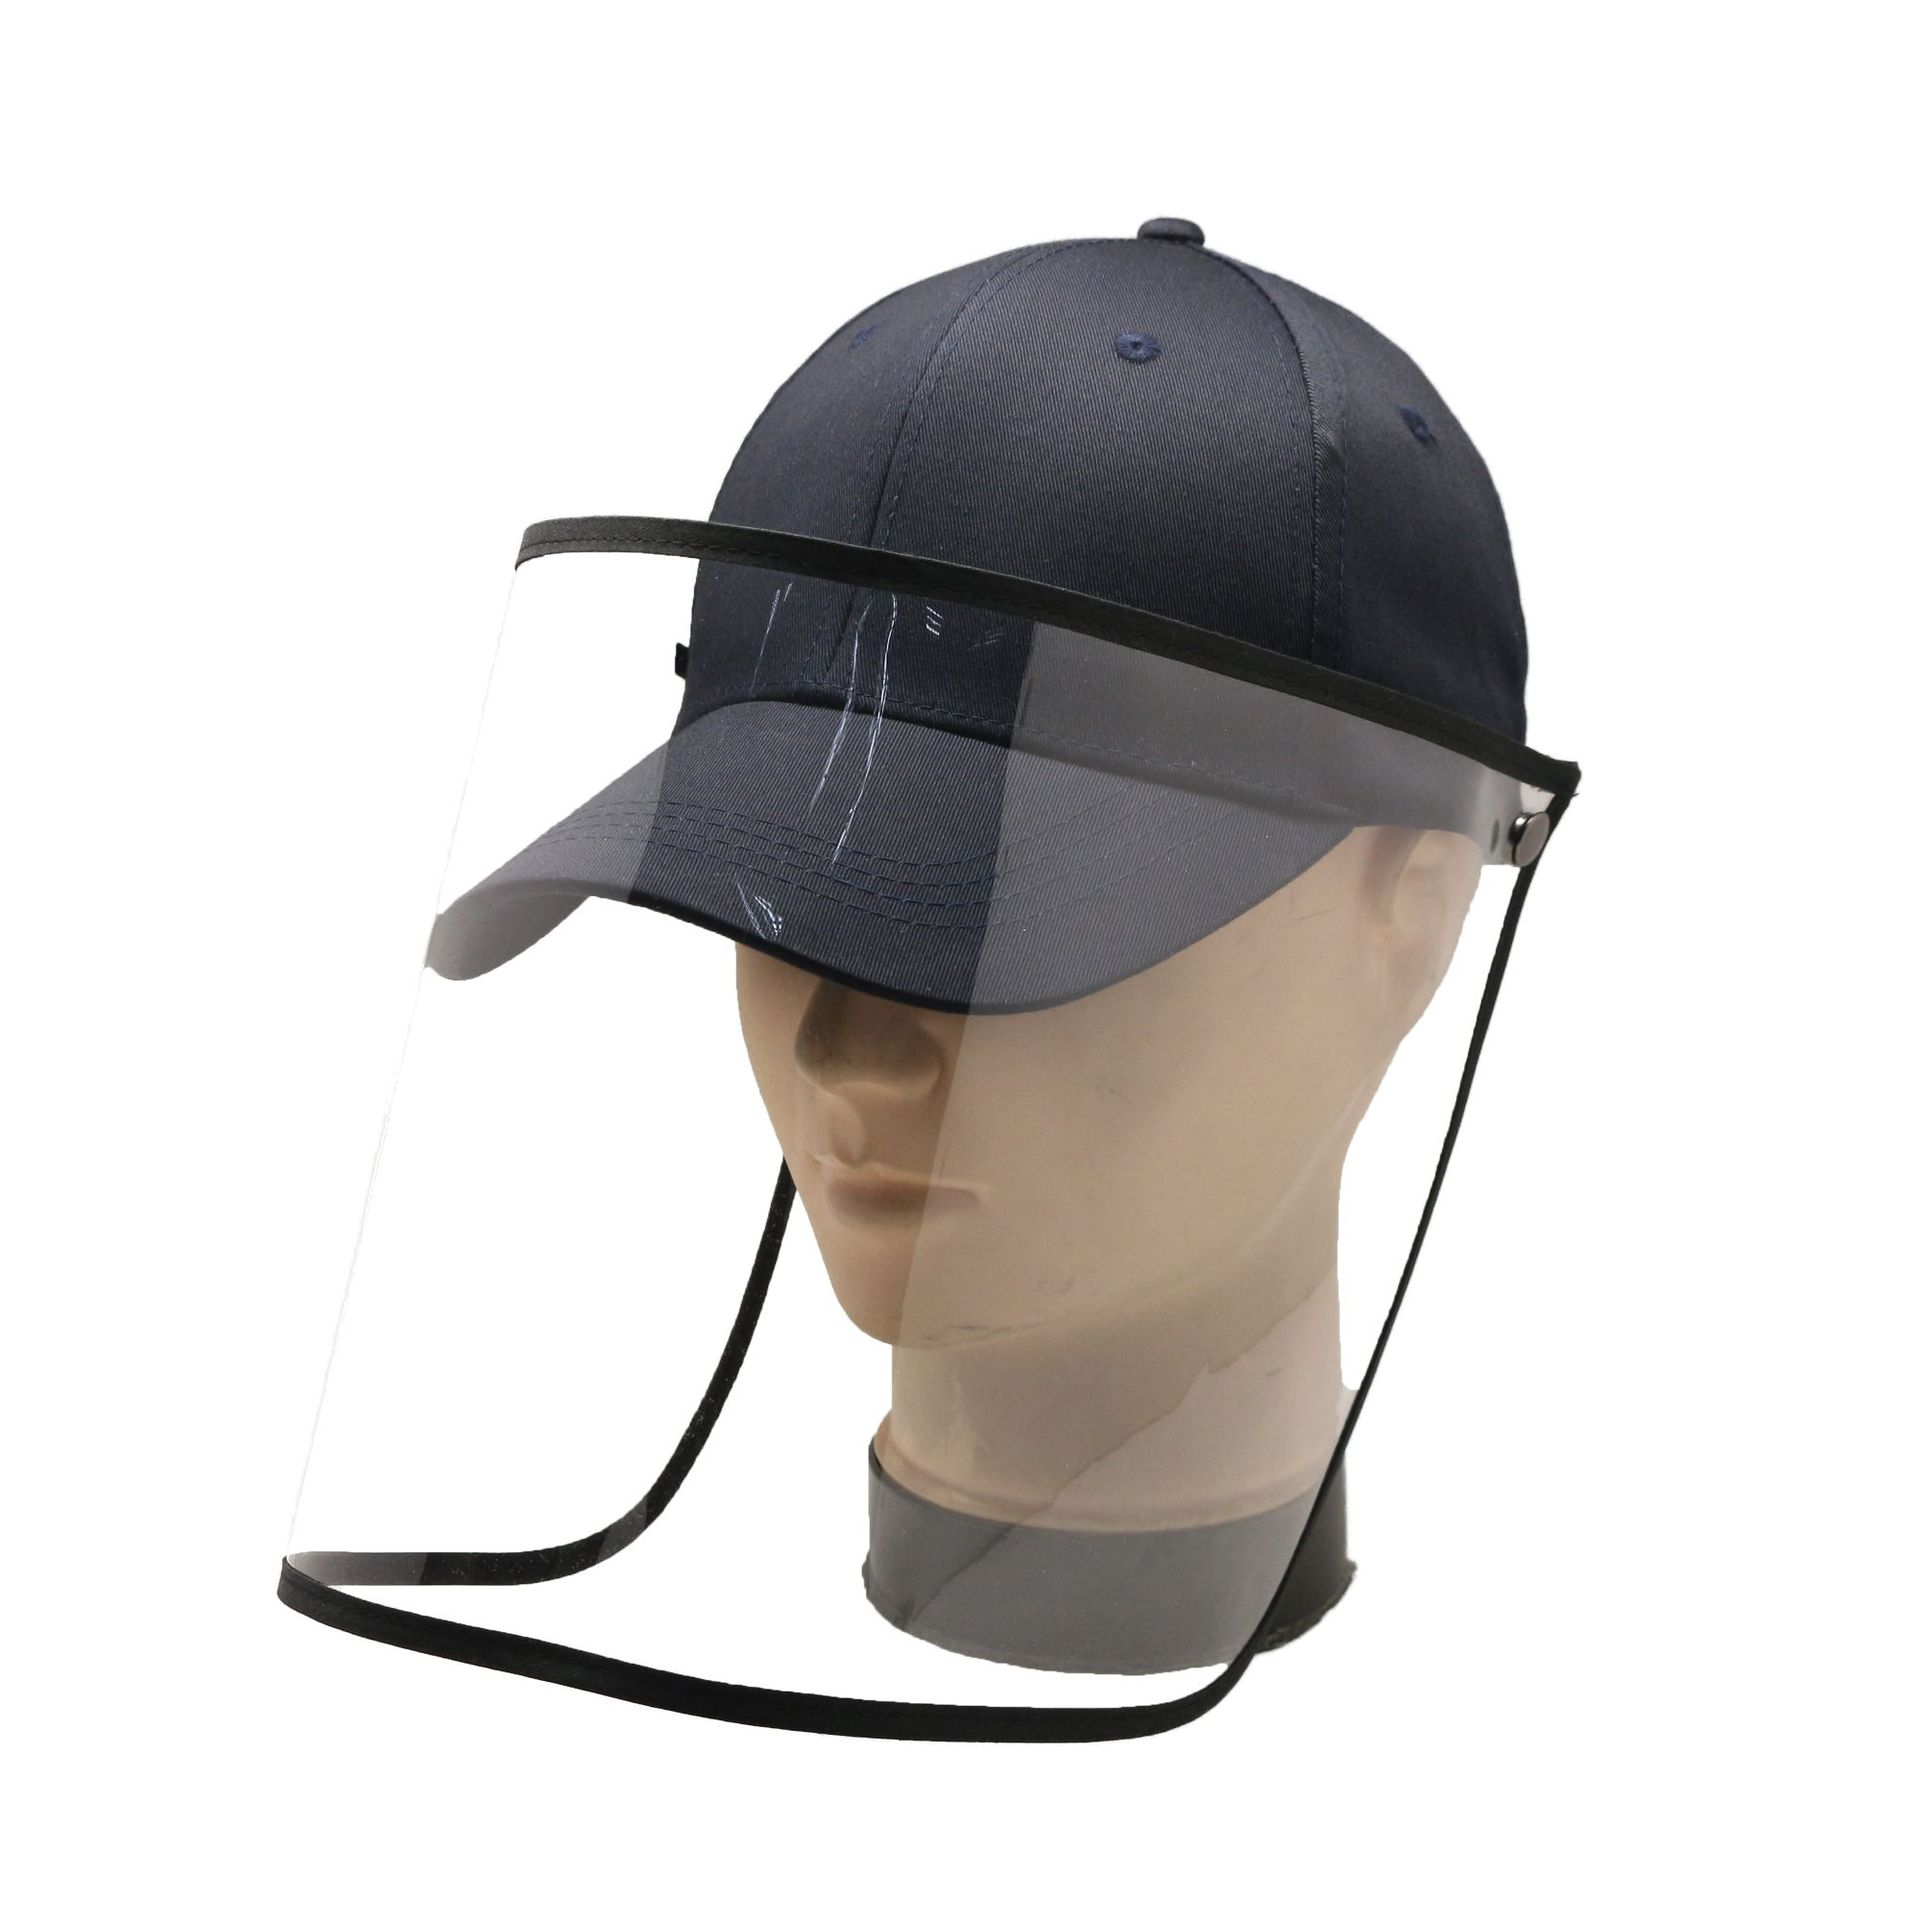 Full Face Mask Protective Visor Hat Sun Cap With Protection Clear Saliva-proof Dust-proof Sun Safety Hat Anti-Virus Mask Saliva